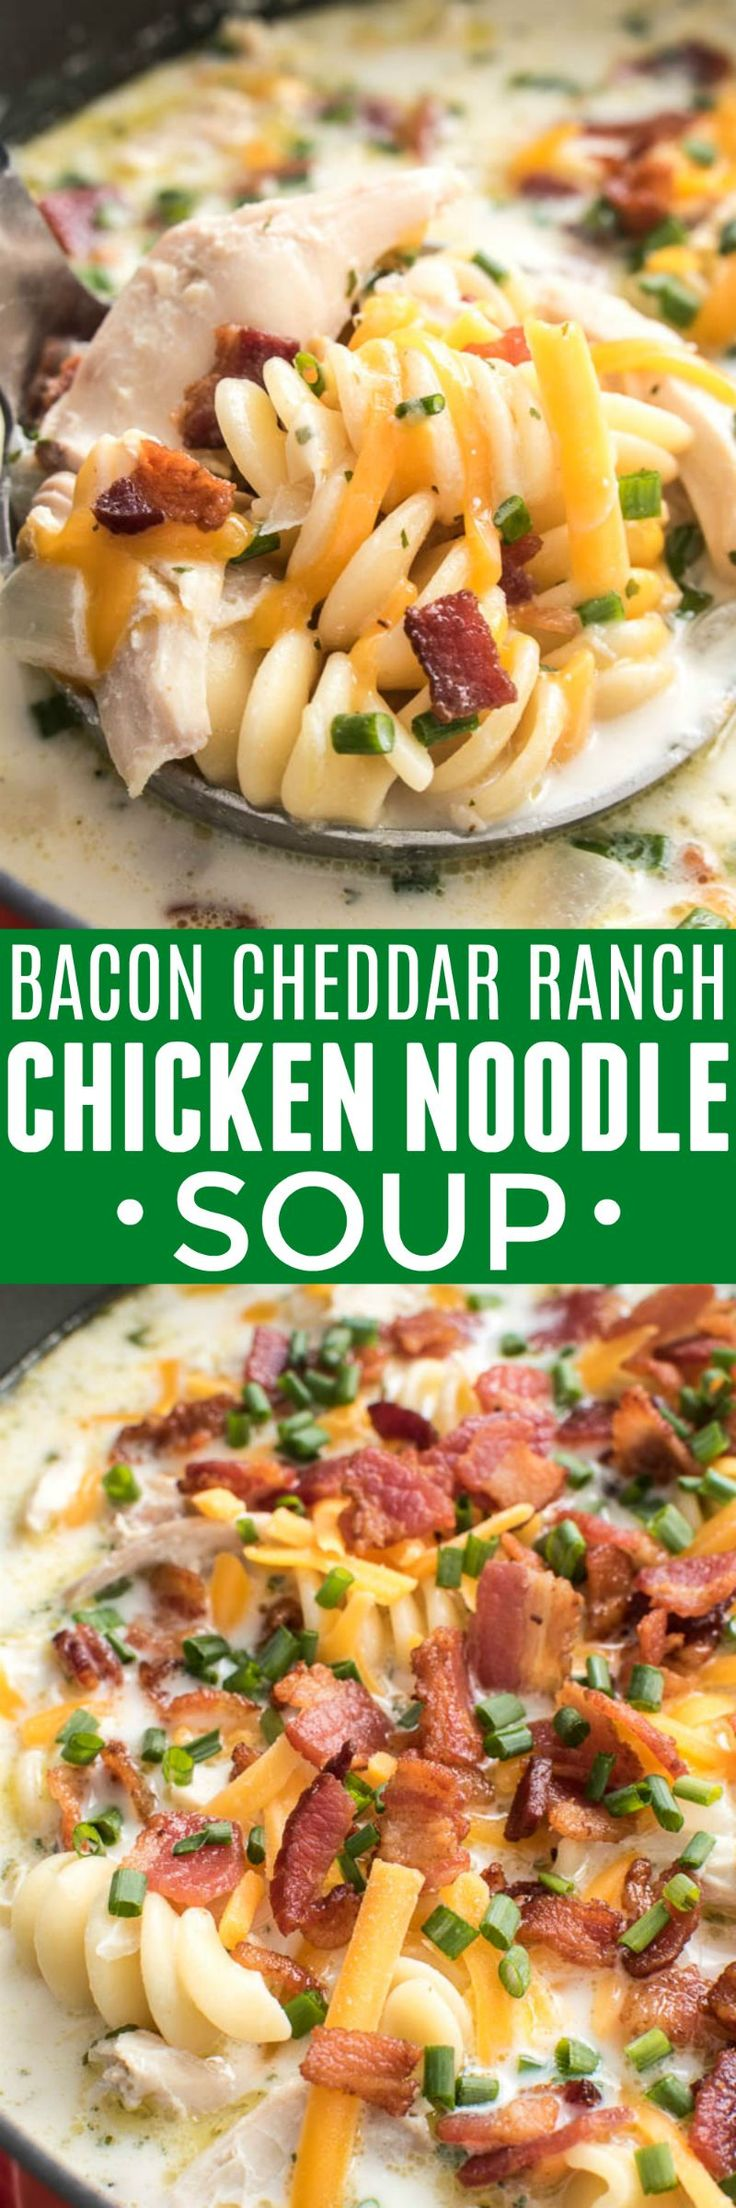 Who doesn't love homemade chicken noodle soup....especially when it's kicked up a notch!? This Bacon Cheddar Ranch Chicken Noodle Soup takes the classic recipe to a new level with the addition of cheddar cheese, ranch seasoning, chives, and...of course...bacon! Perfect for the cold months of winter and equally delicious all year round, if you love a good creamy chicken noodle soup, you'll love this recipe!